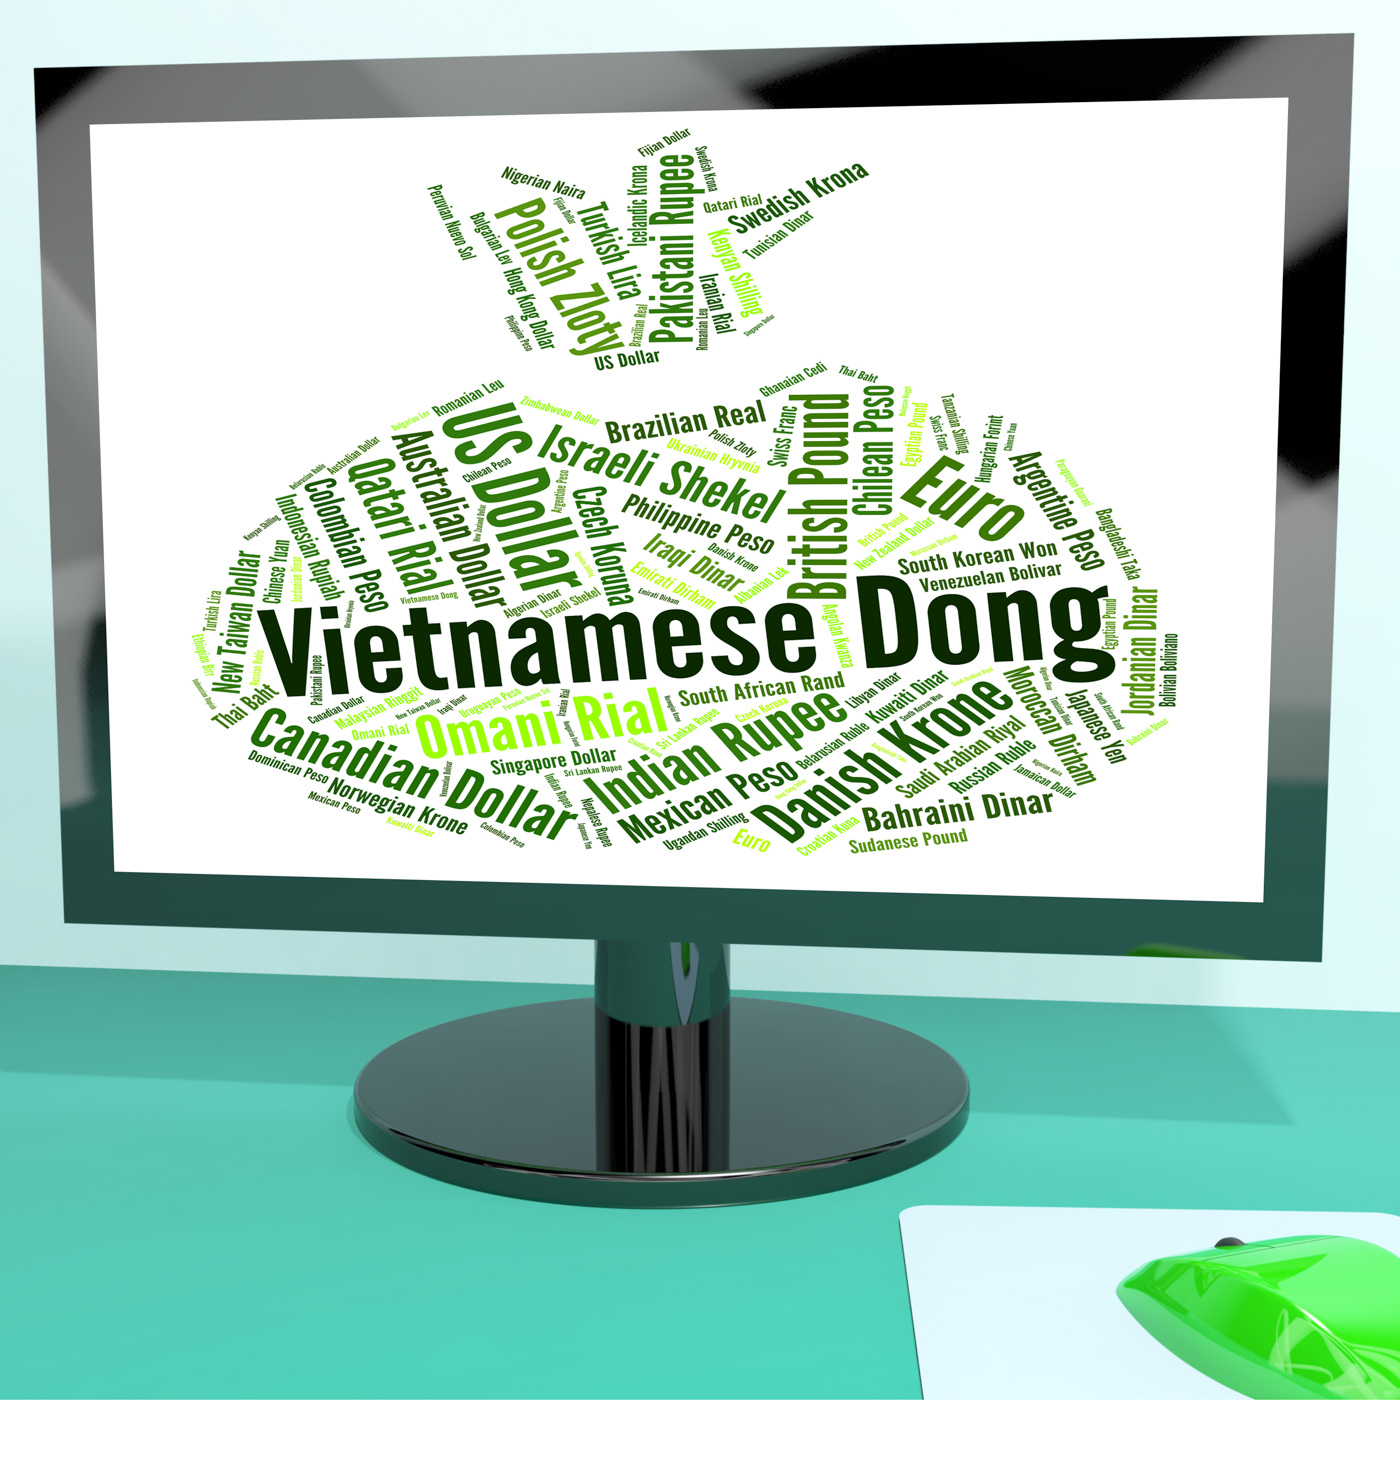 Vietnamese dong means foreign exchange and banknotes photo